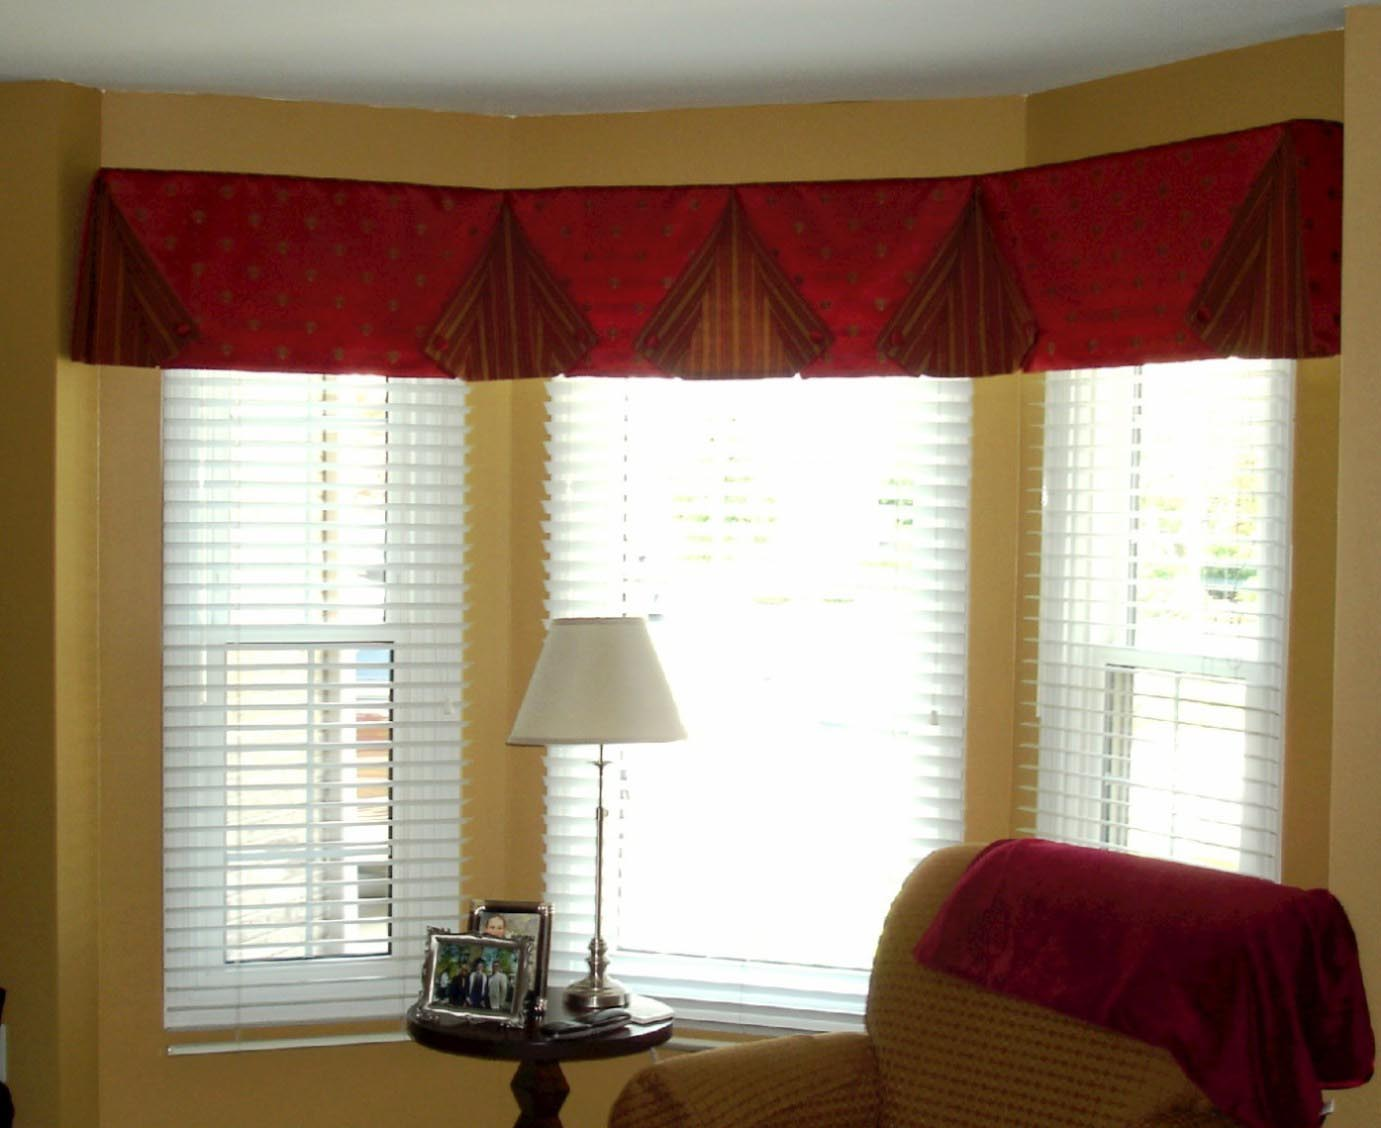 Living room valance ideas window treatments design ideas for Living room picture window ideas